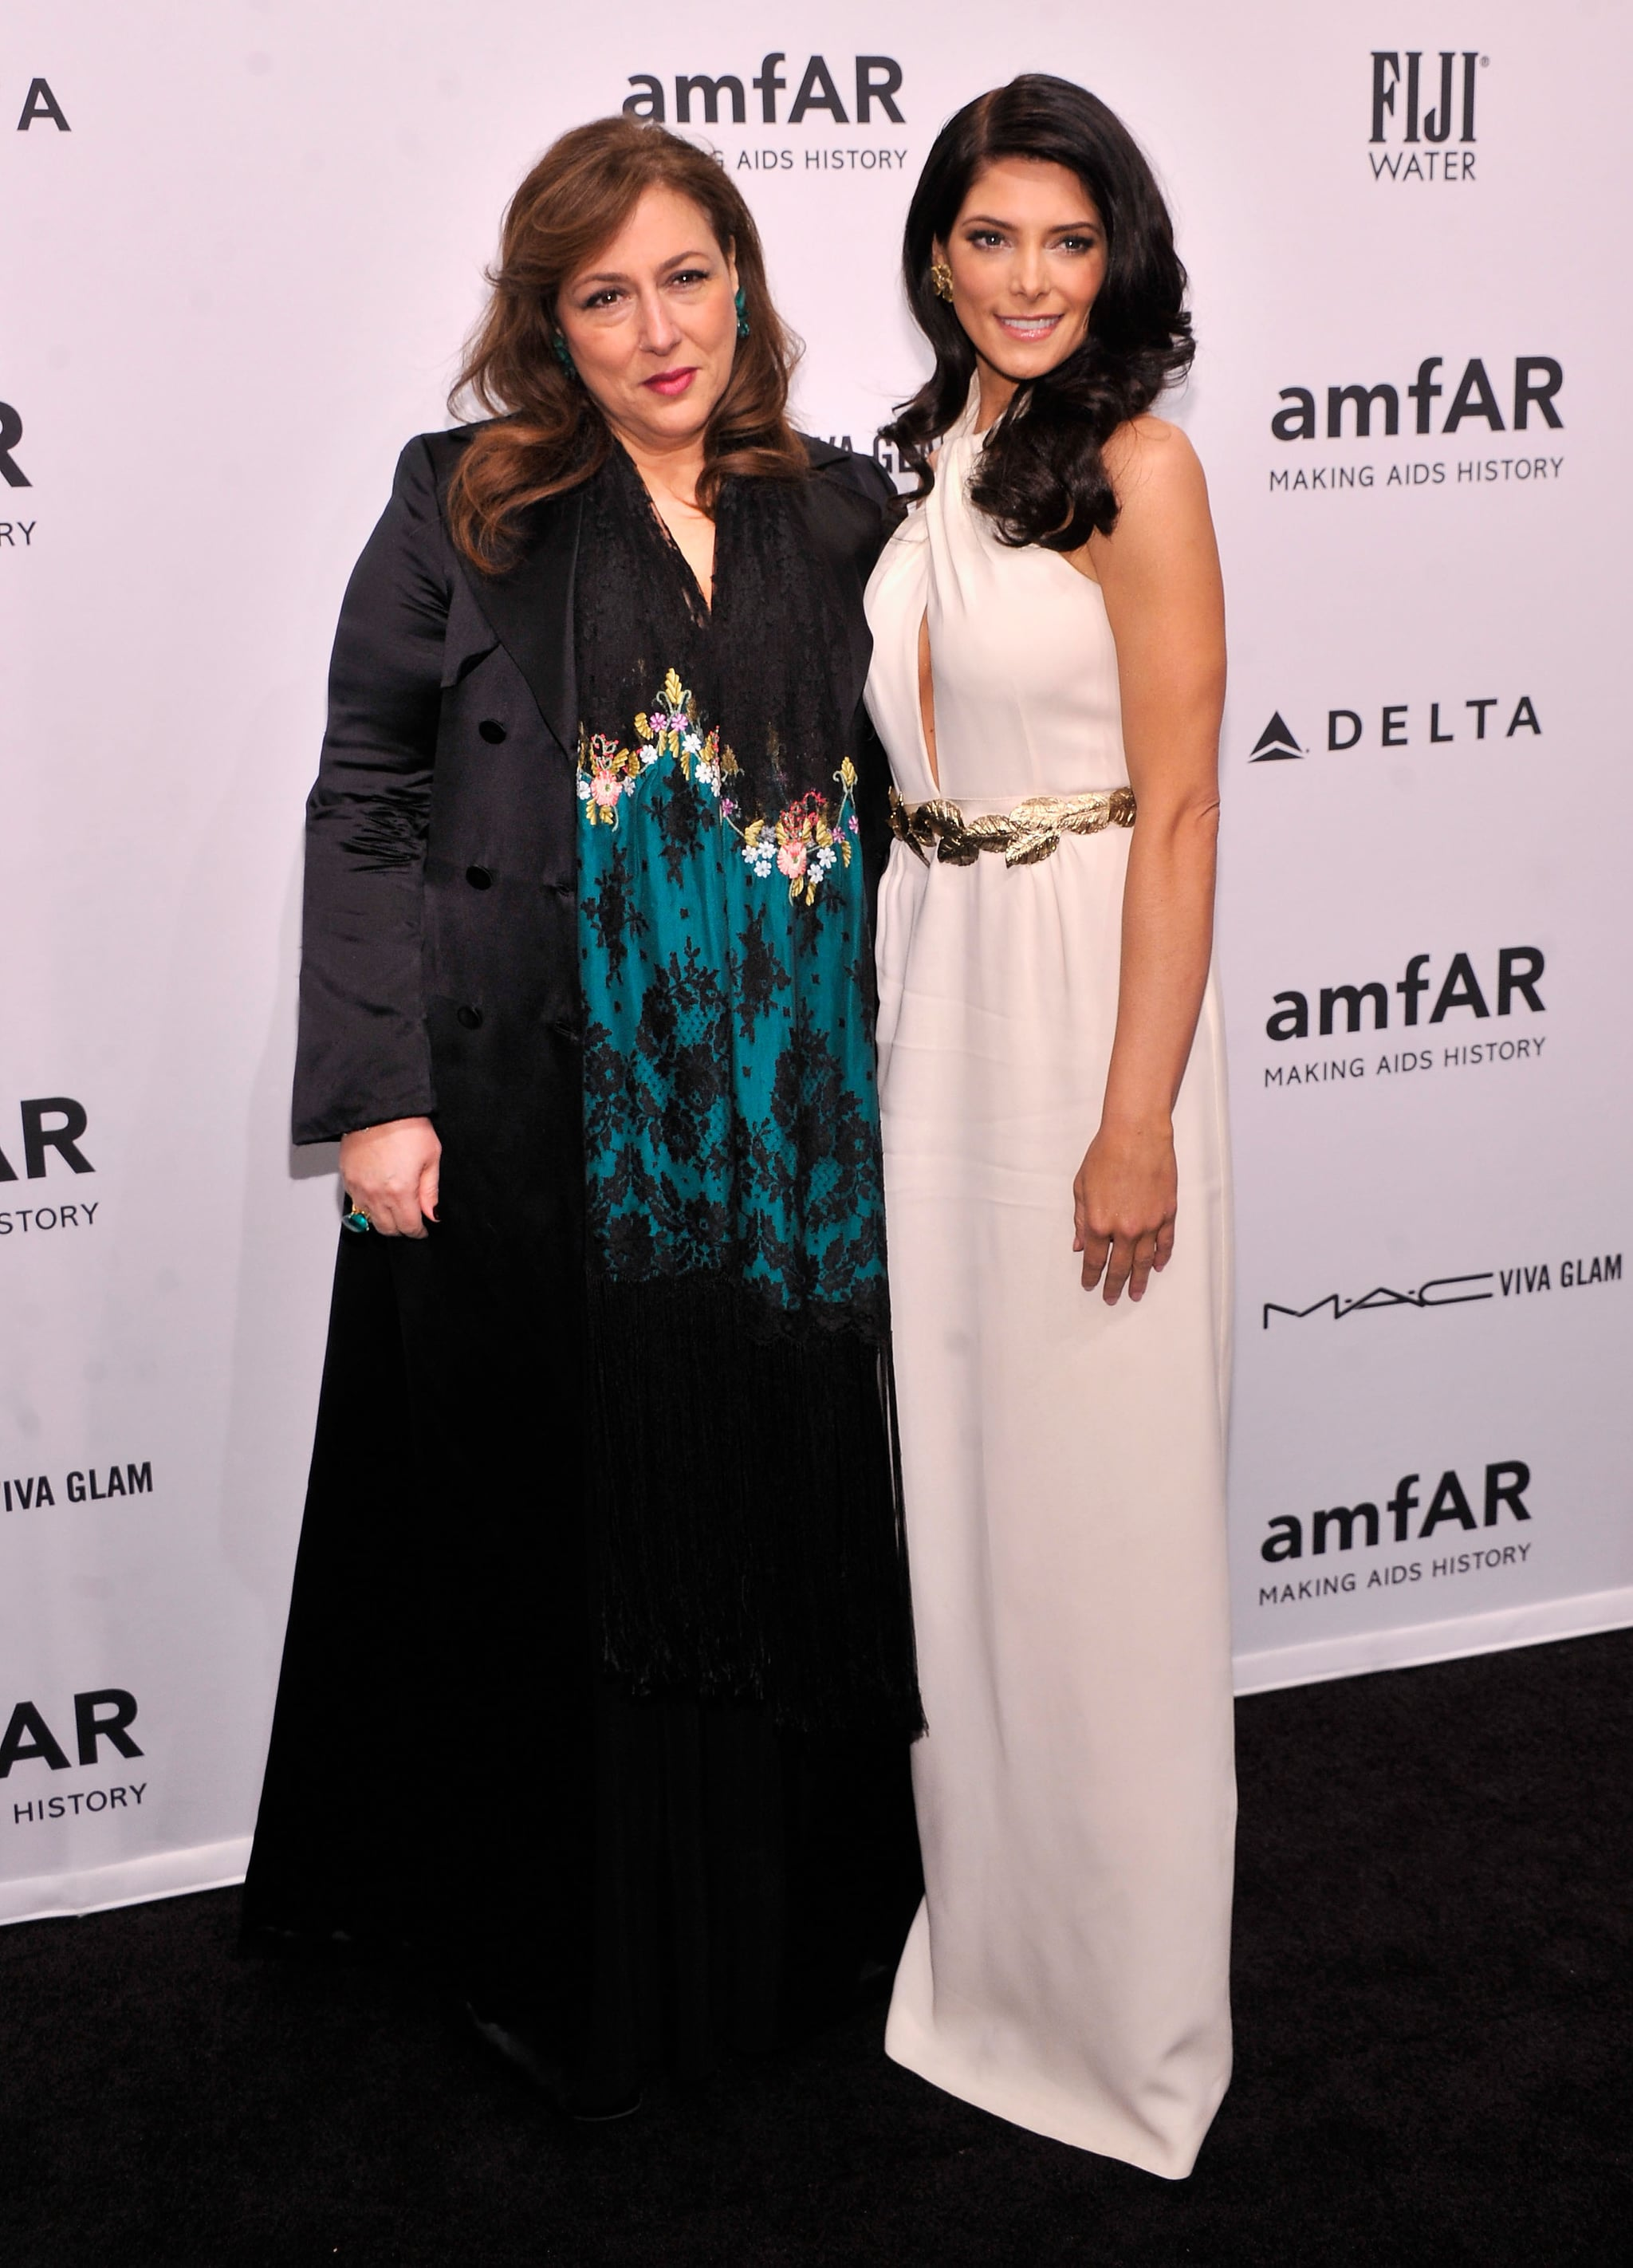 Lorraine Schwartz and Ashley Greene smiled for photos at Wednesday's amfAR Gala in NYC.